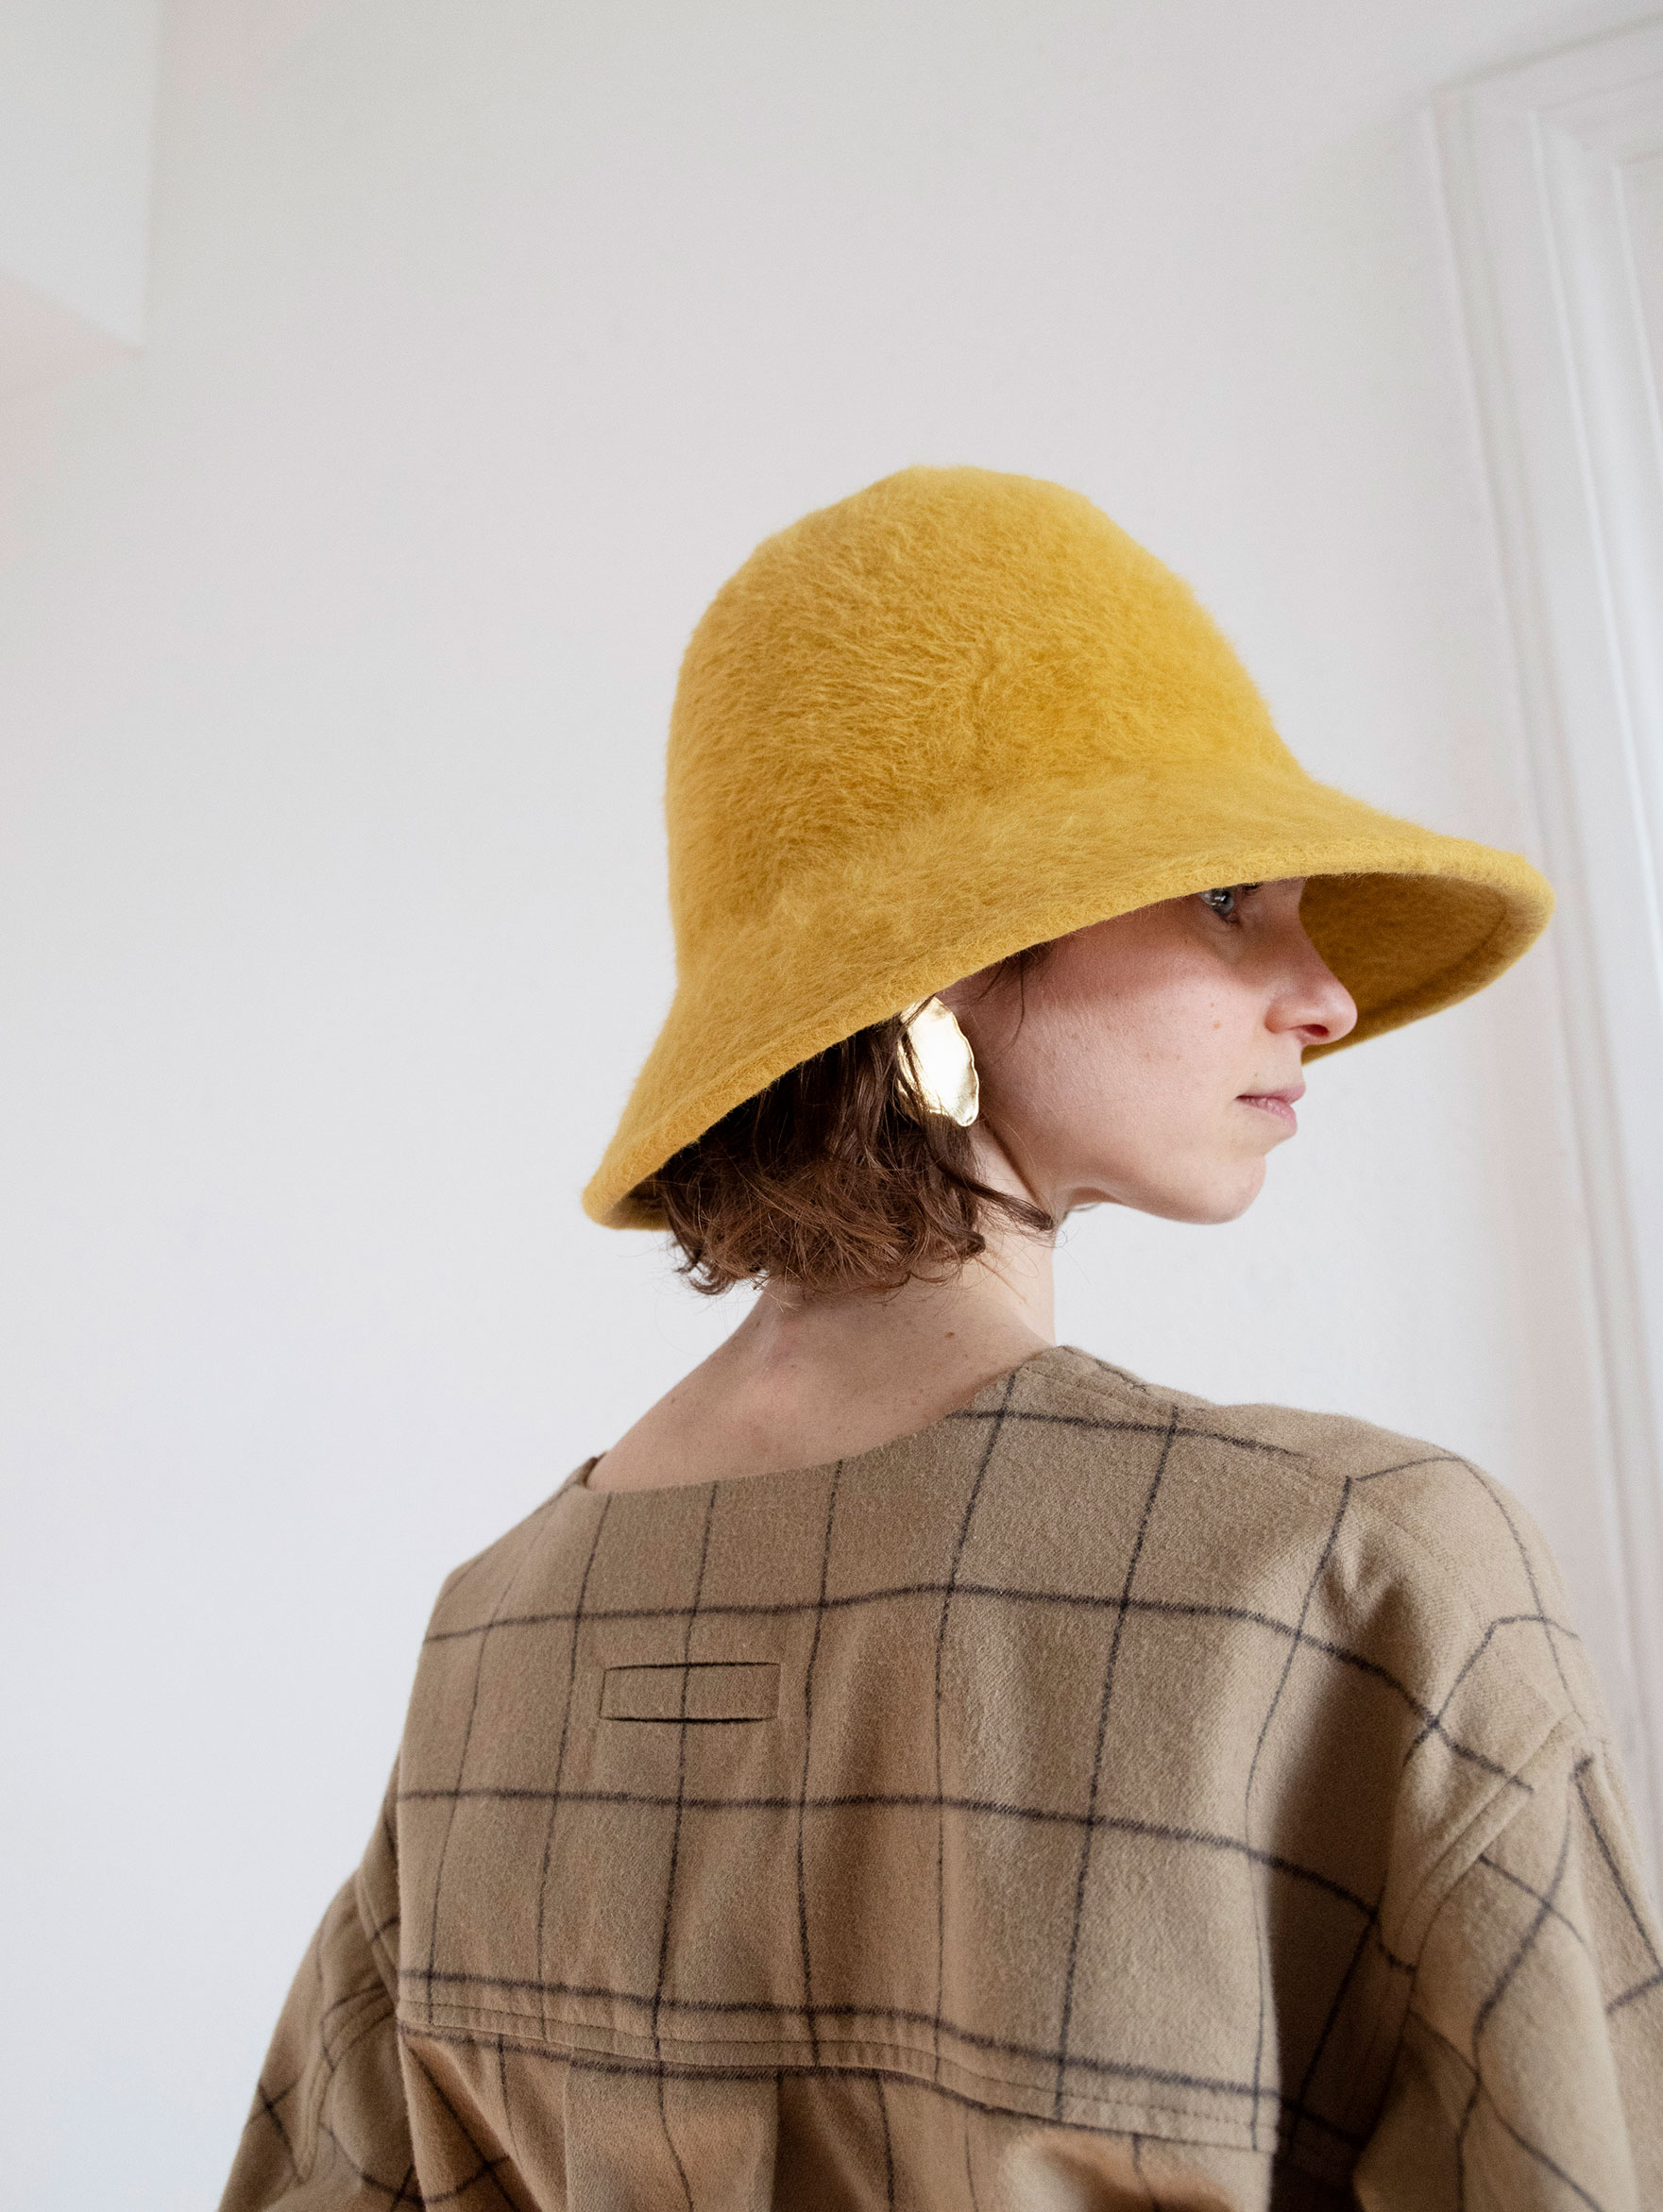 The Pan-Suit A/W 2021